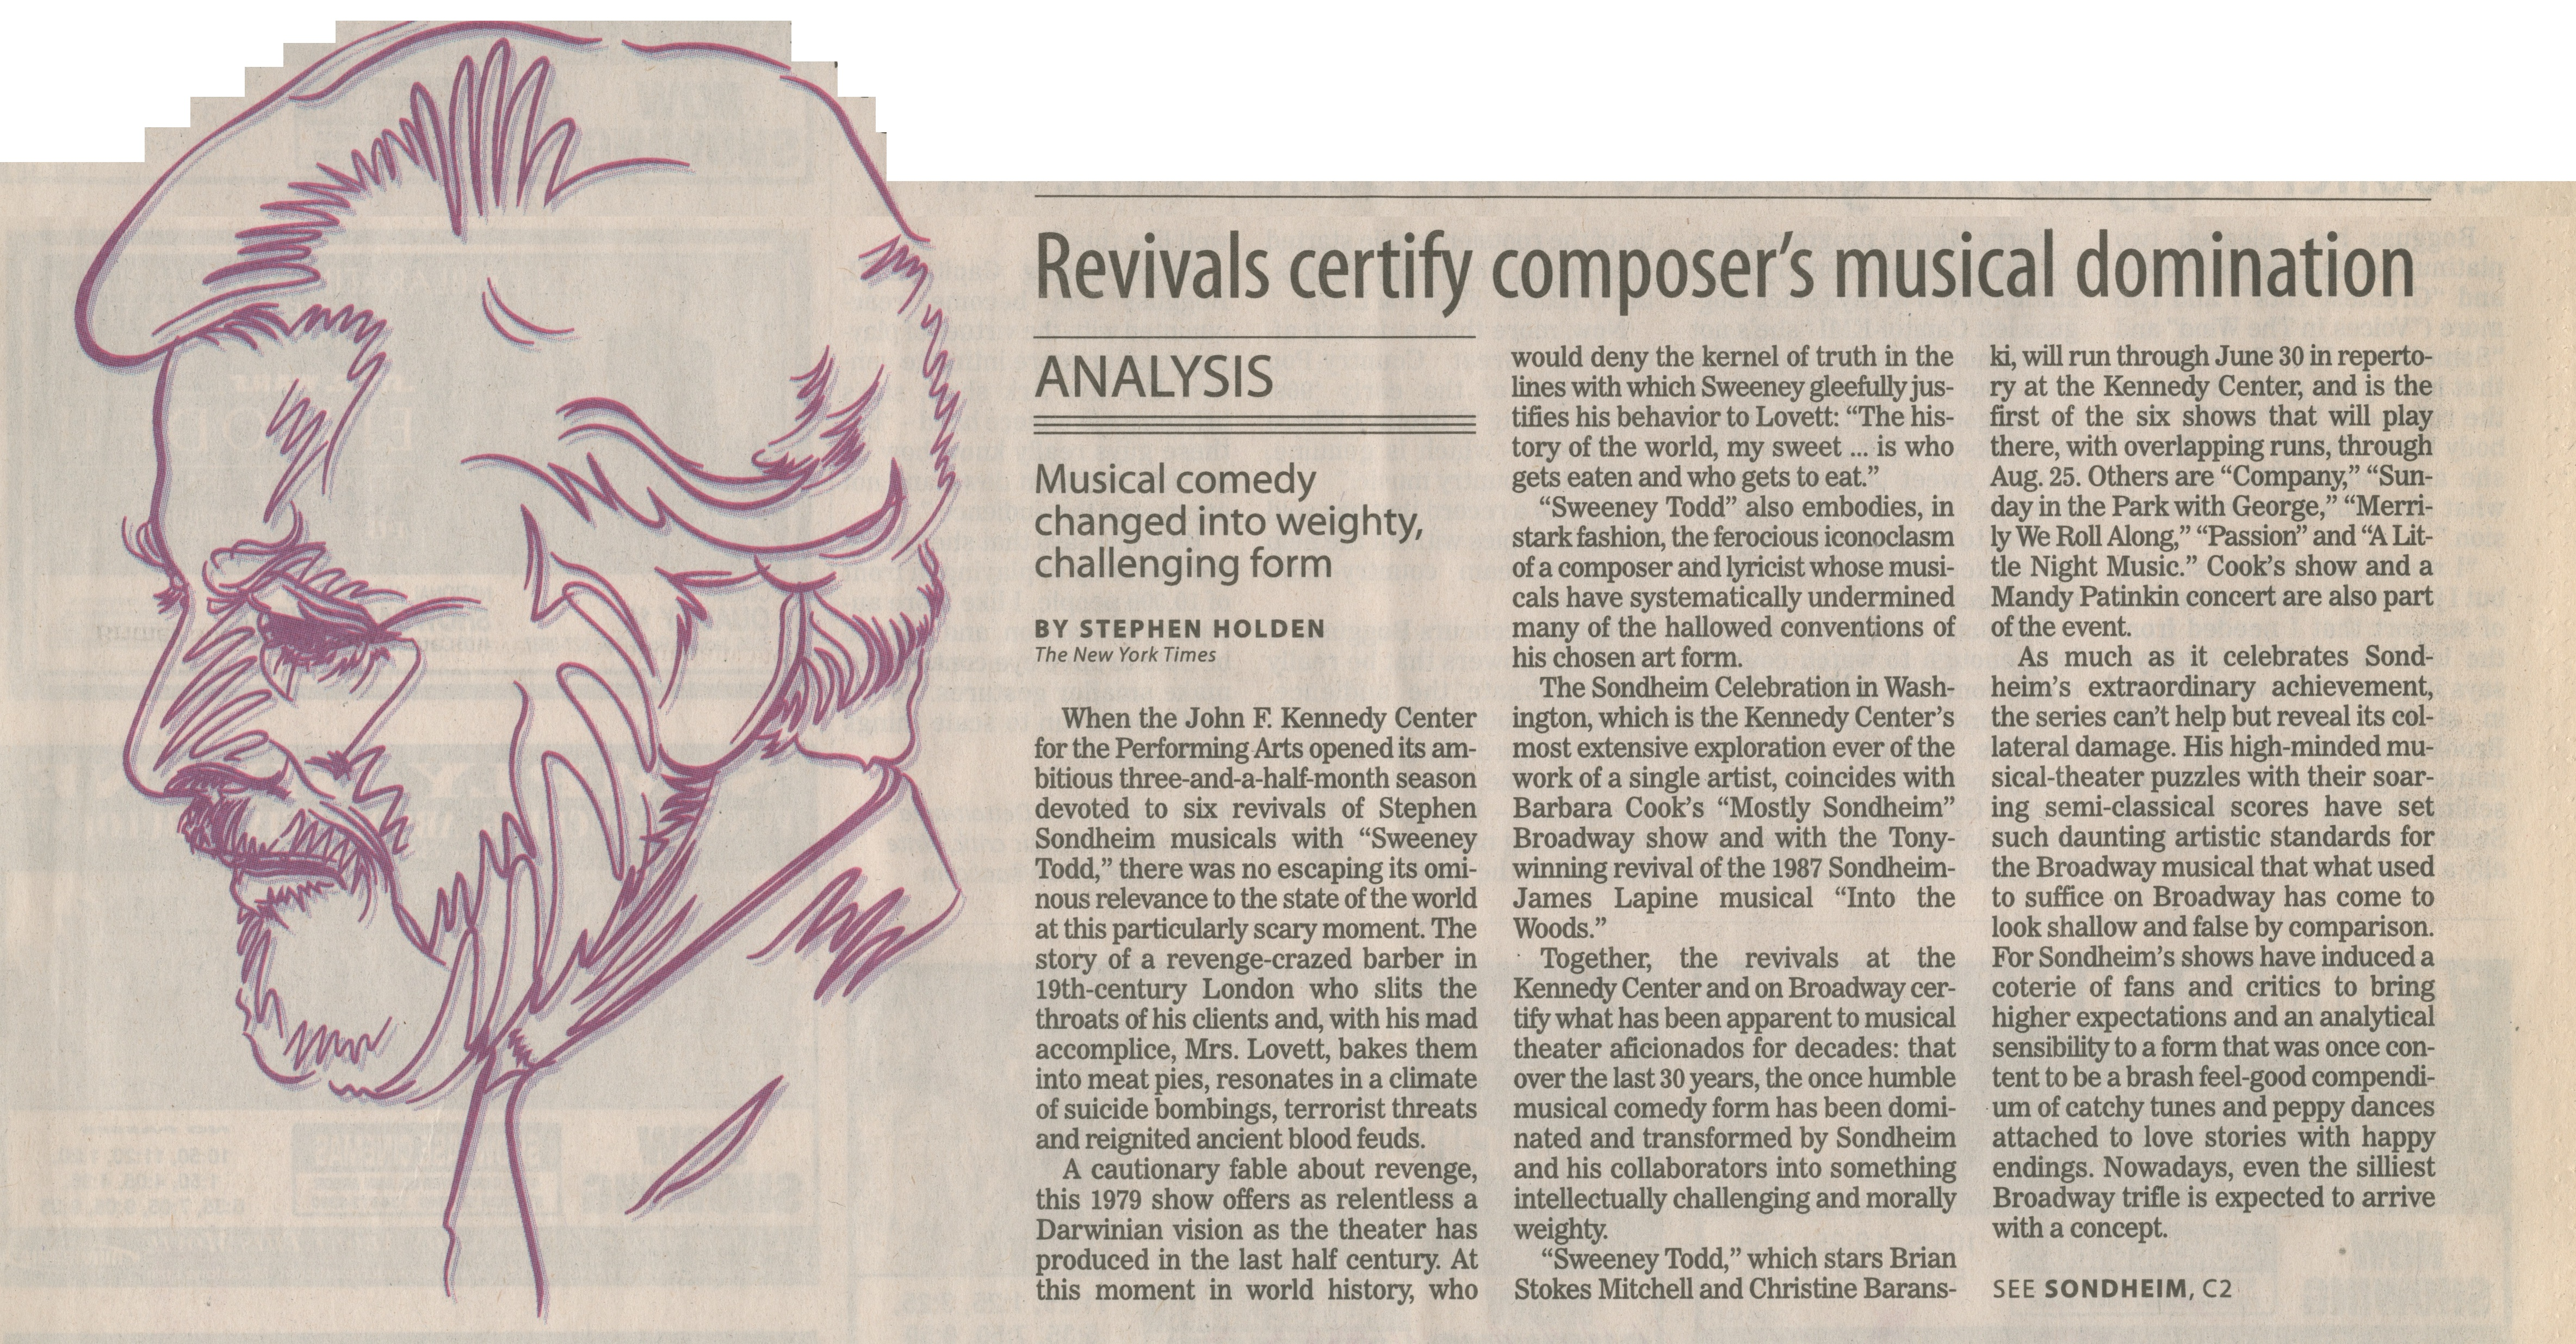 Revivals certify composer's musical domination image